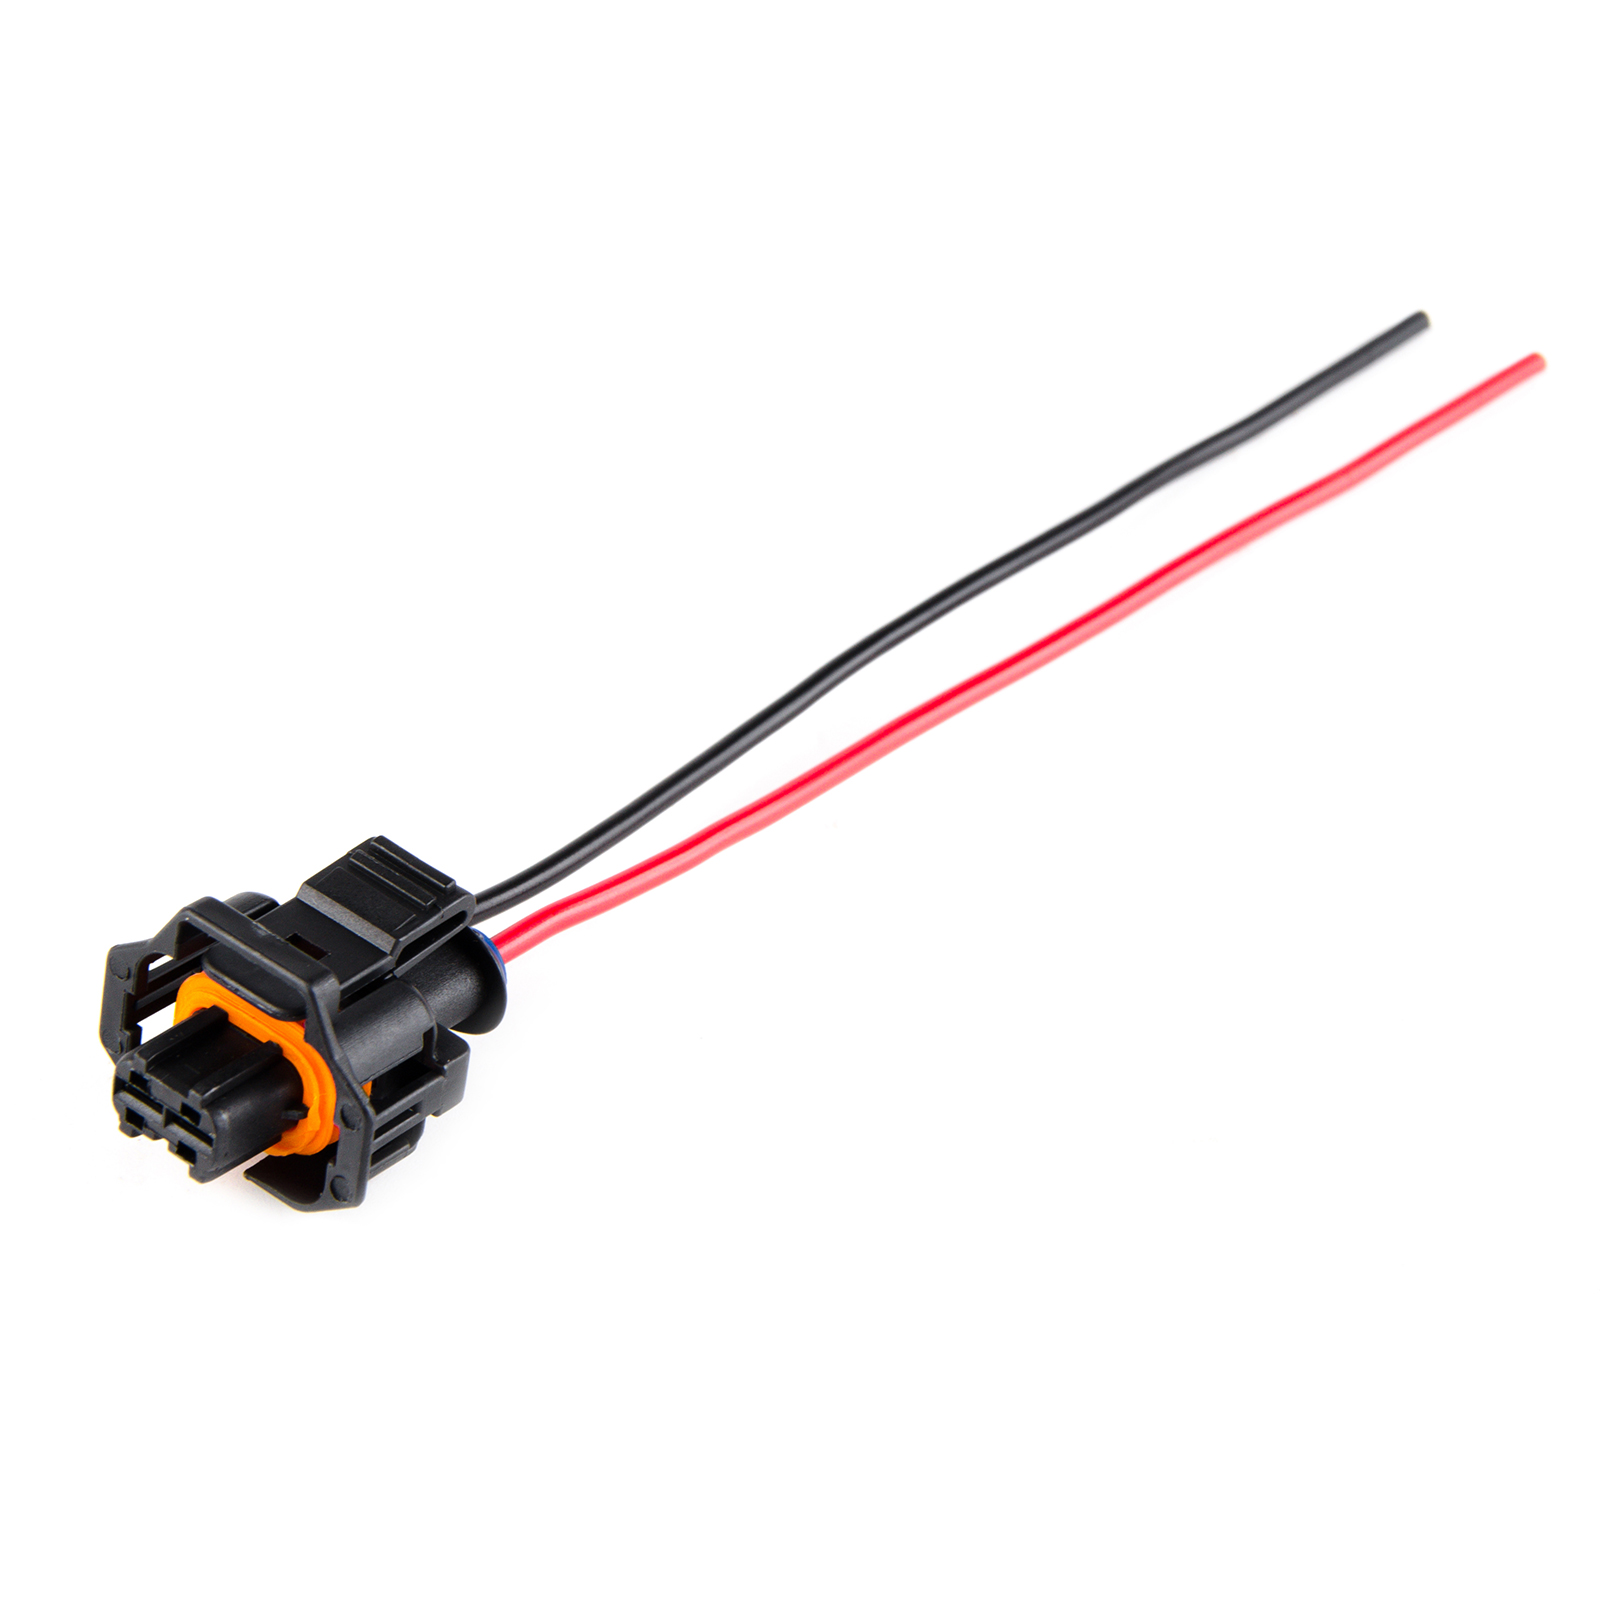 hight resolution of duramax lly lbz llm fuel injector connector harness for bosch vauxhall zafira vectra signum astra 2004